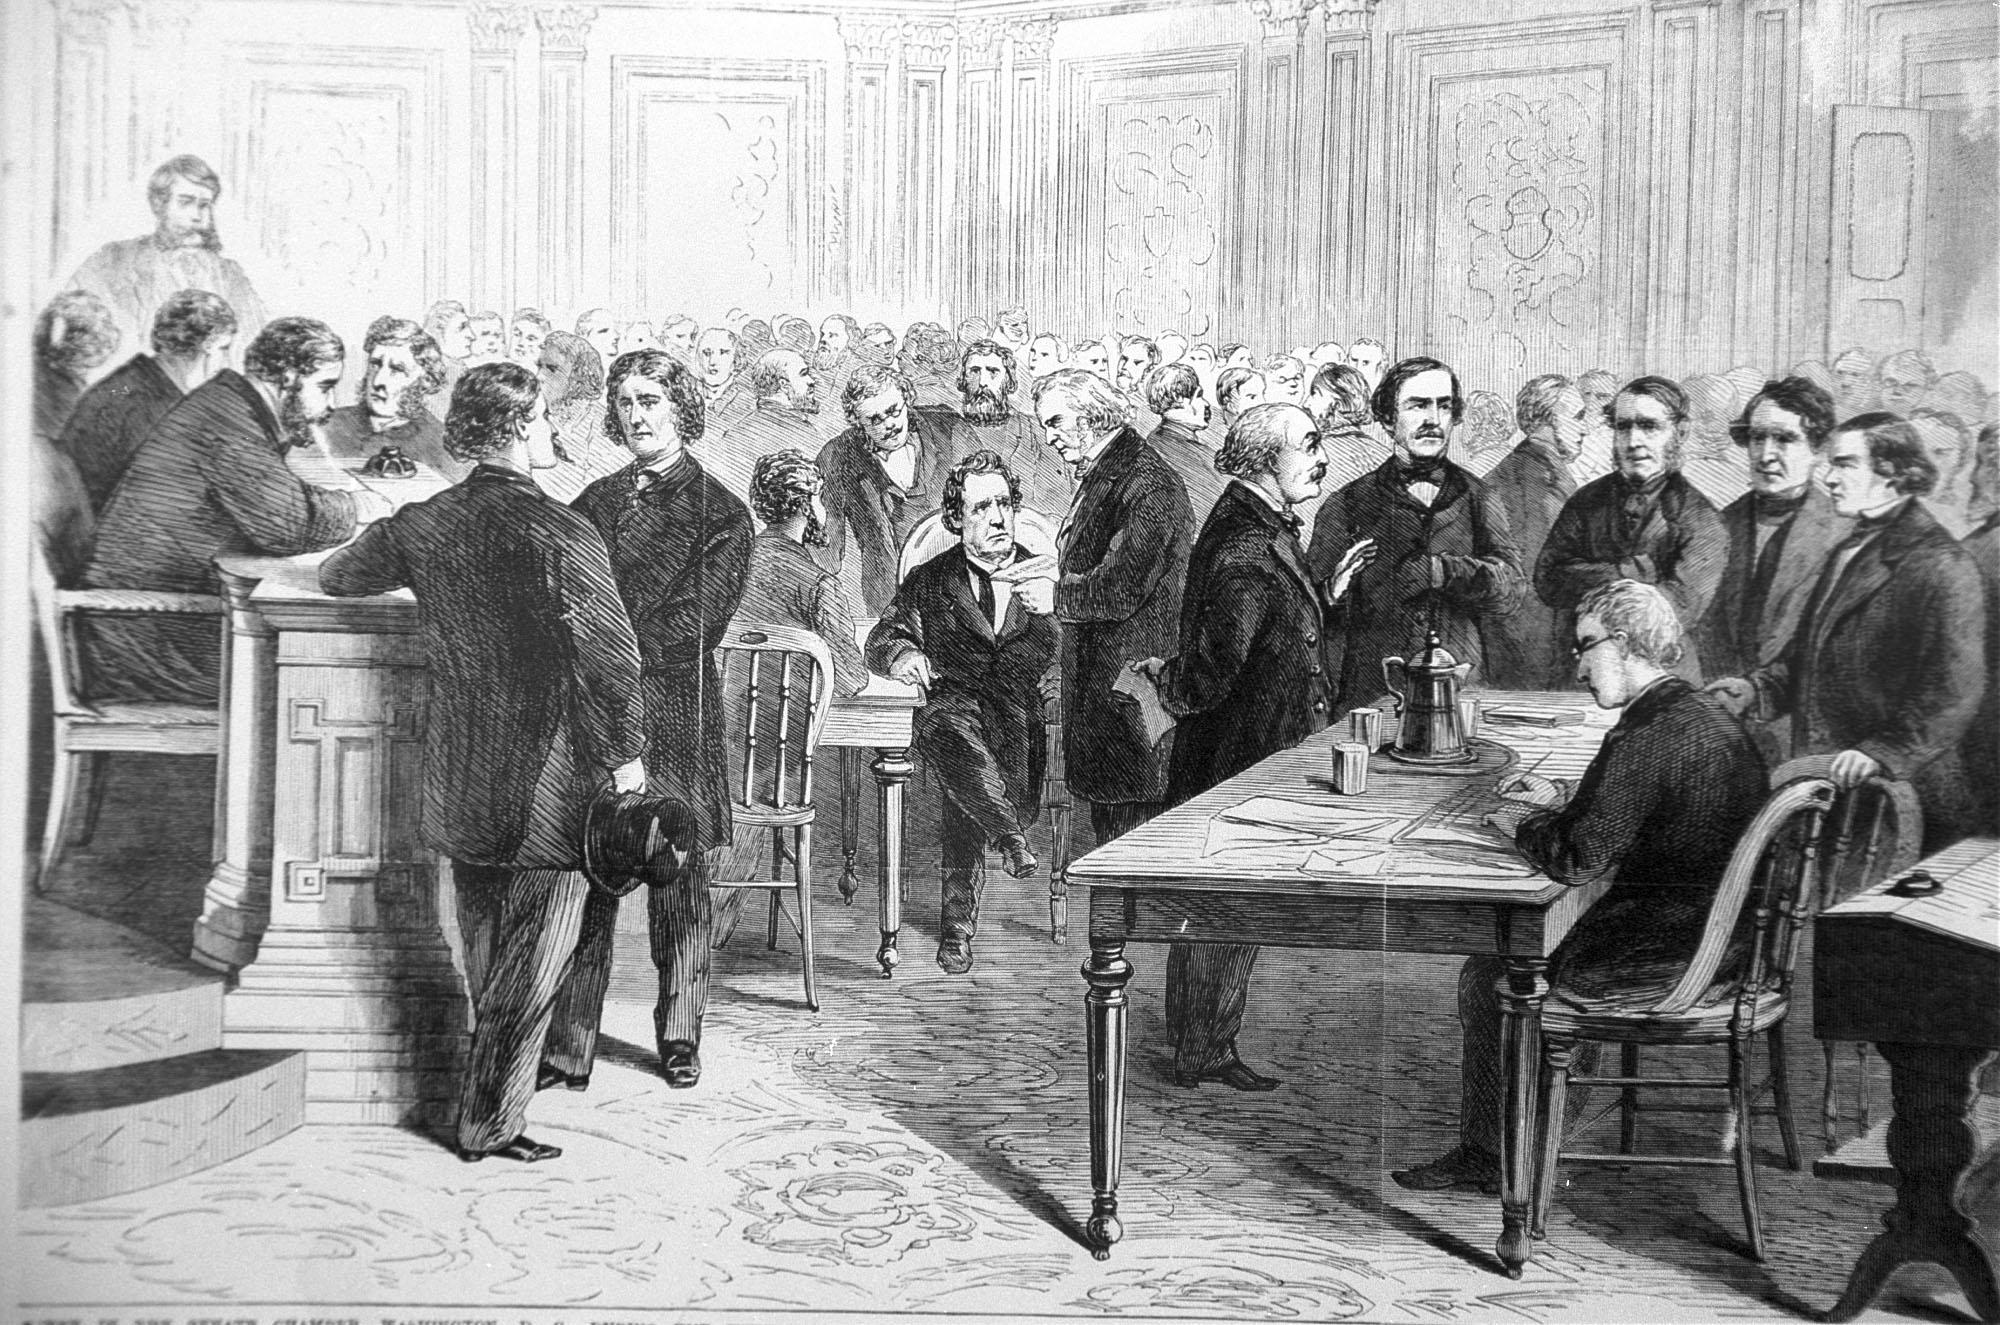 An engraving showing the impeachment trial of President Andrew Johnson in the Senate on March 13, 1868.